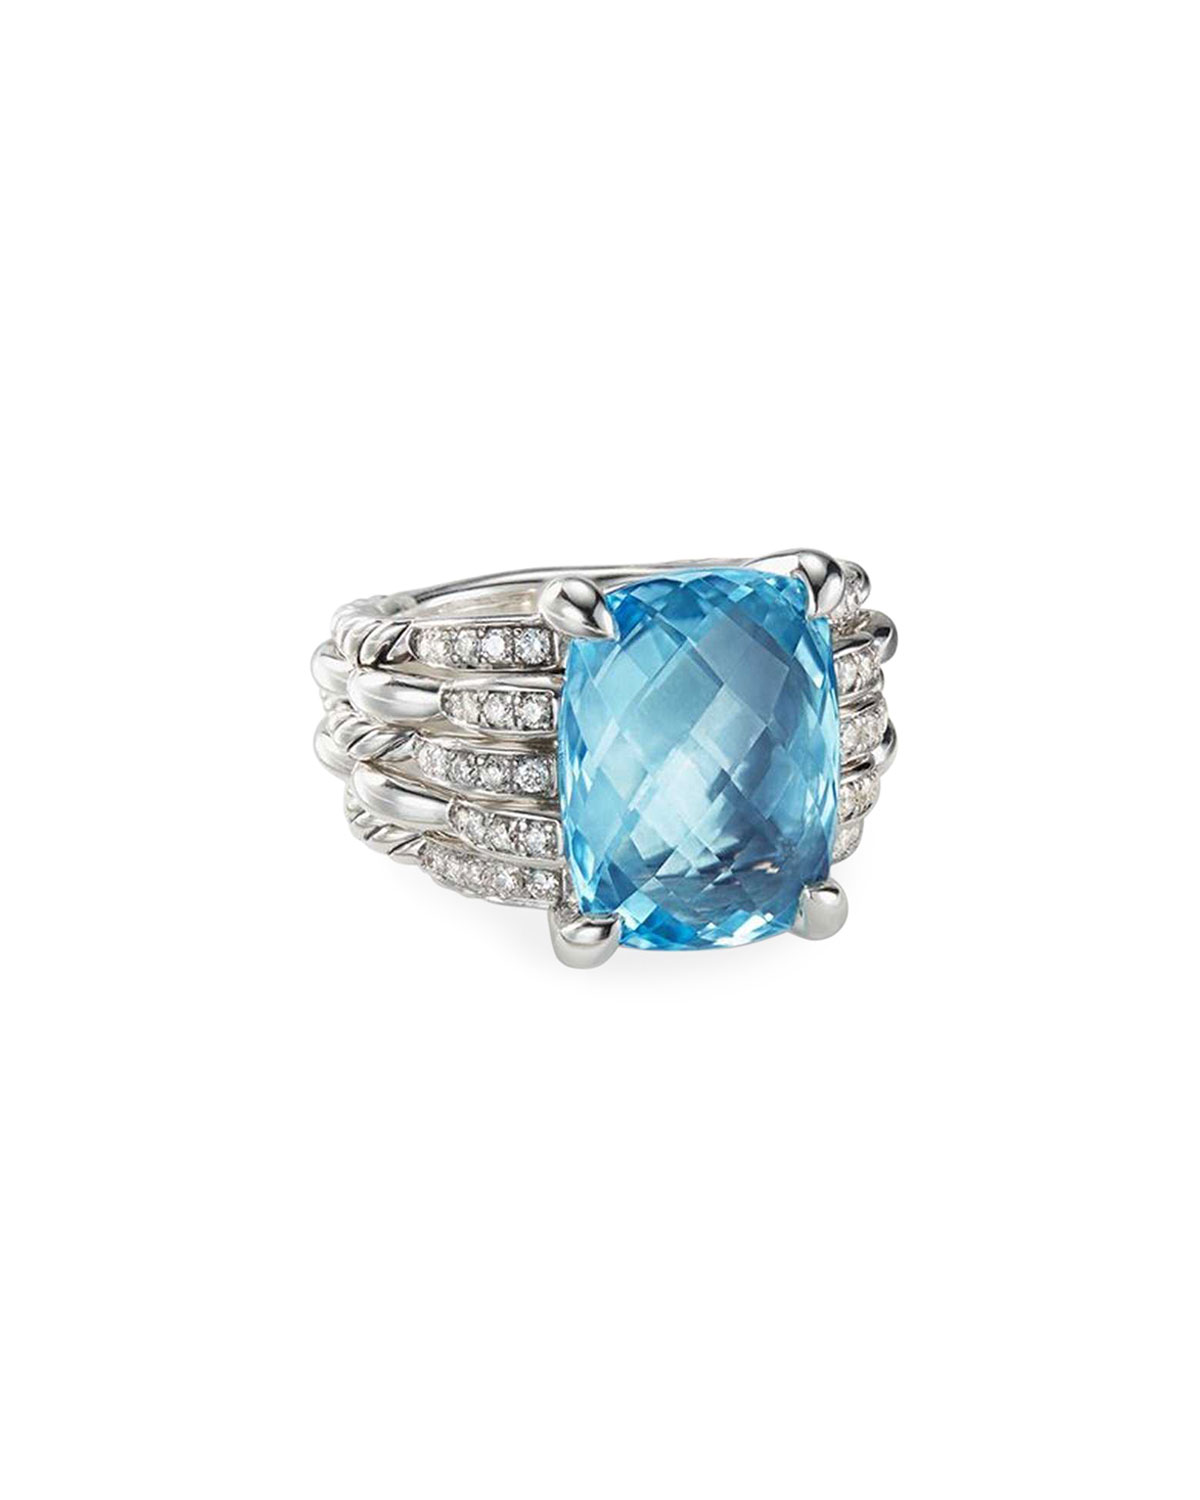 defff72f0a27 David Yurman Tides Diamond   Blue Topaz Ring